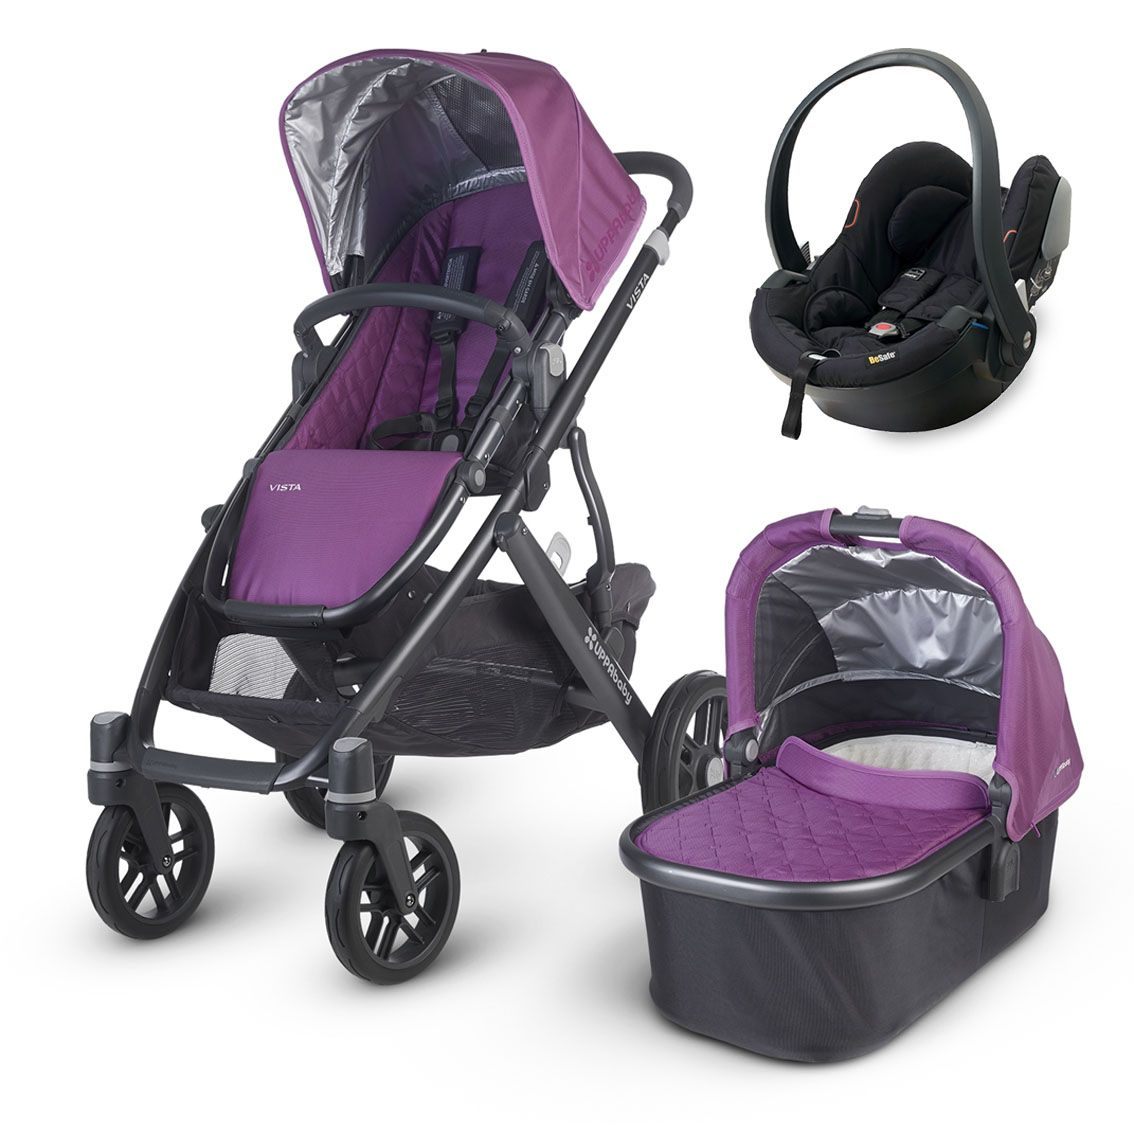 This UPPAbaby Vista 2015 (Samantha Amethyst) package